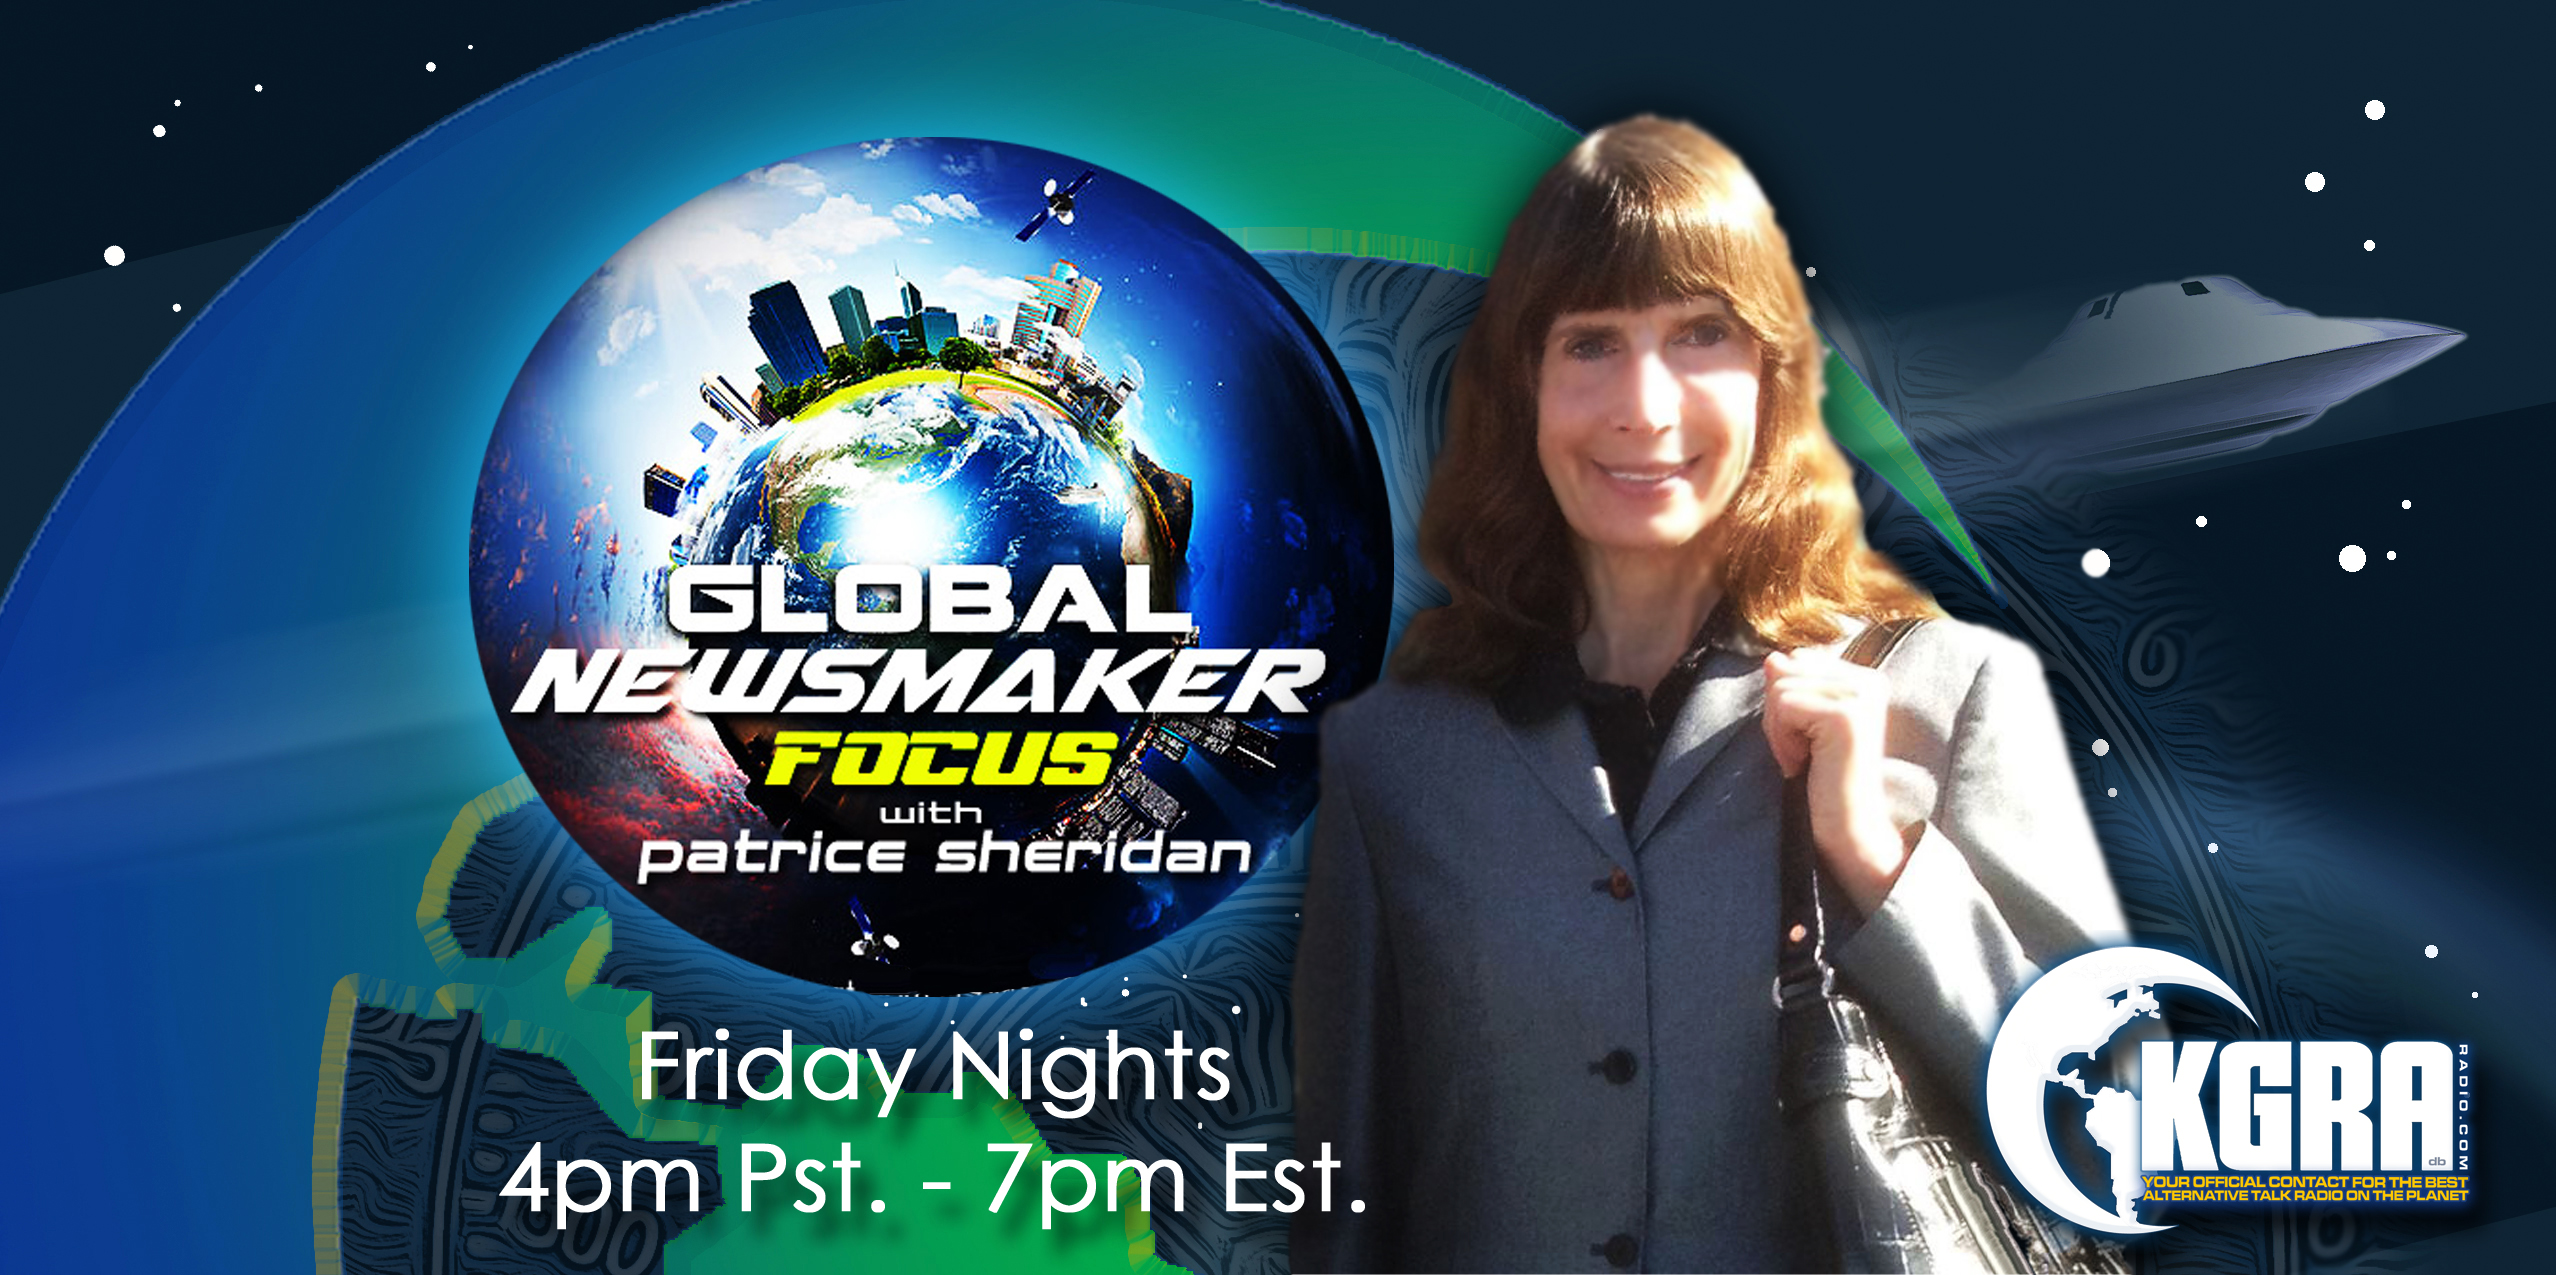 Global Newsmaker Focus Welcomes Allan Pacheco